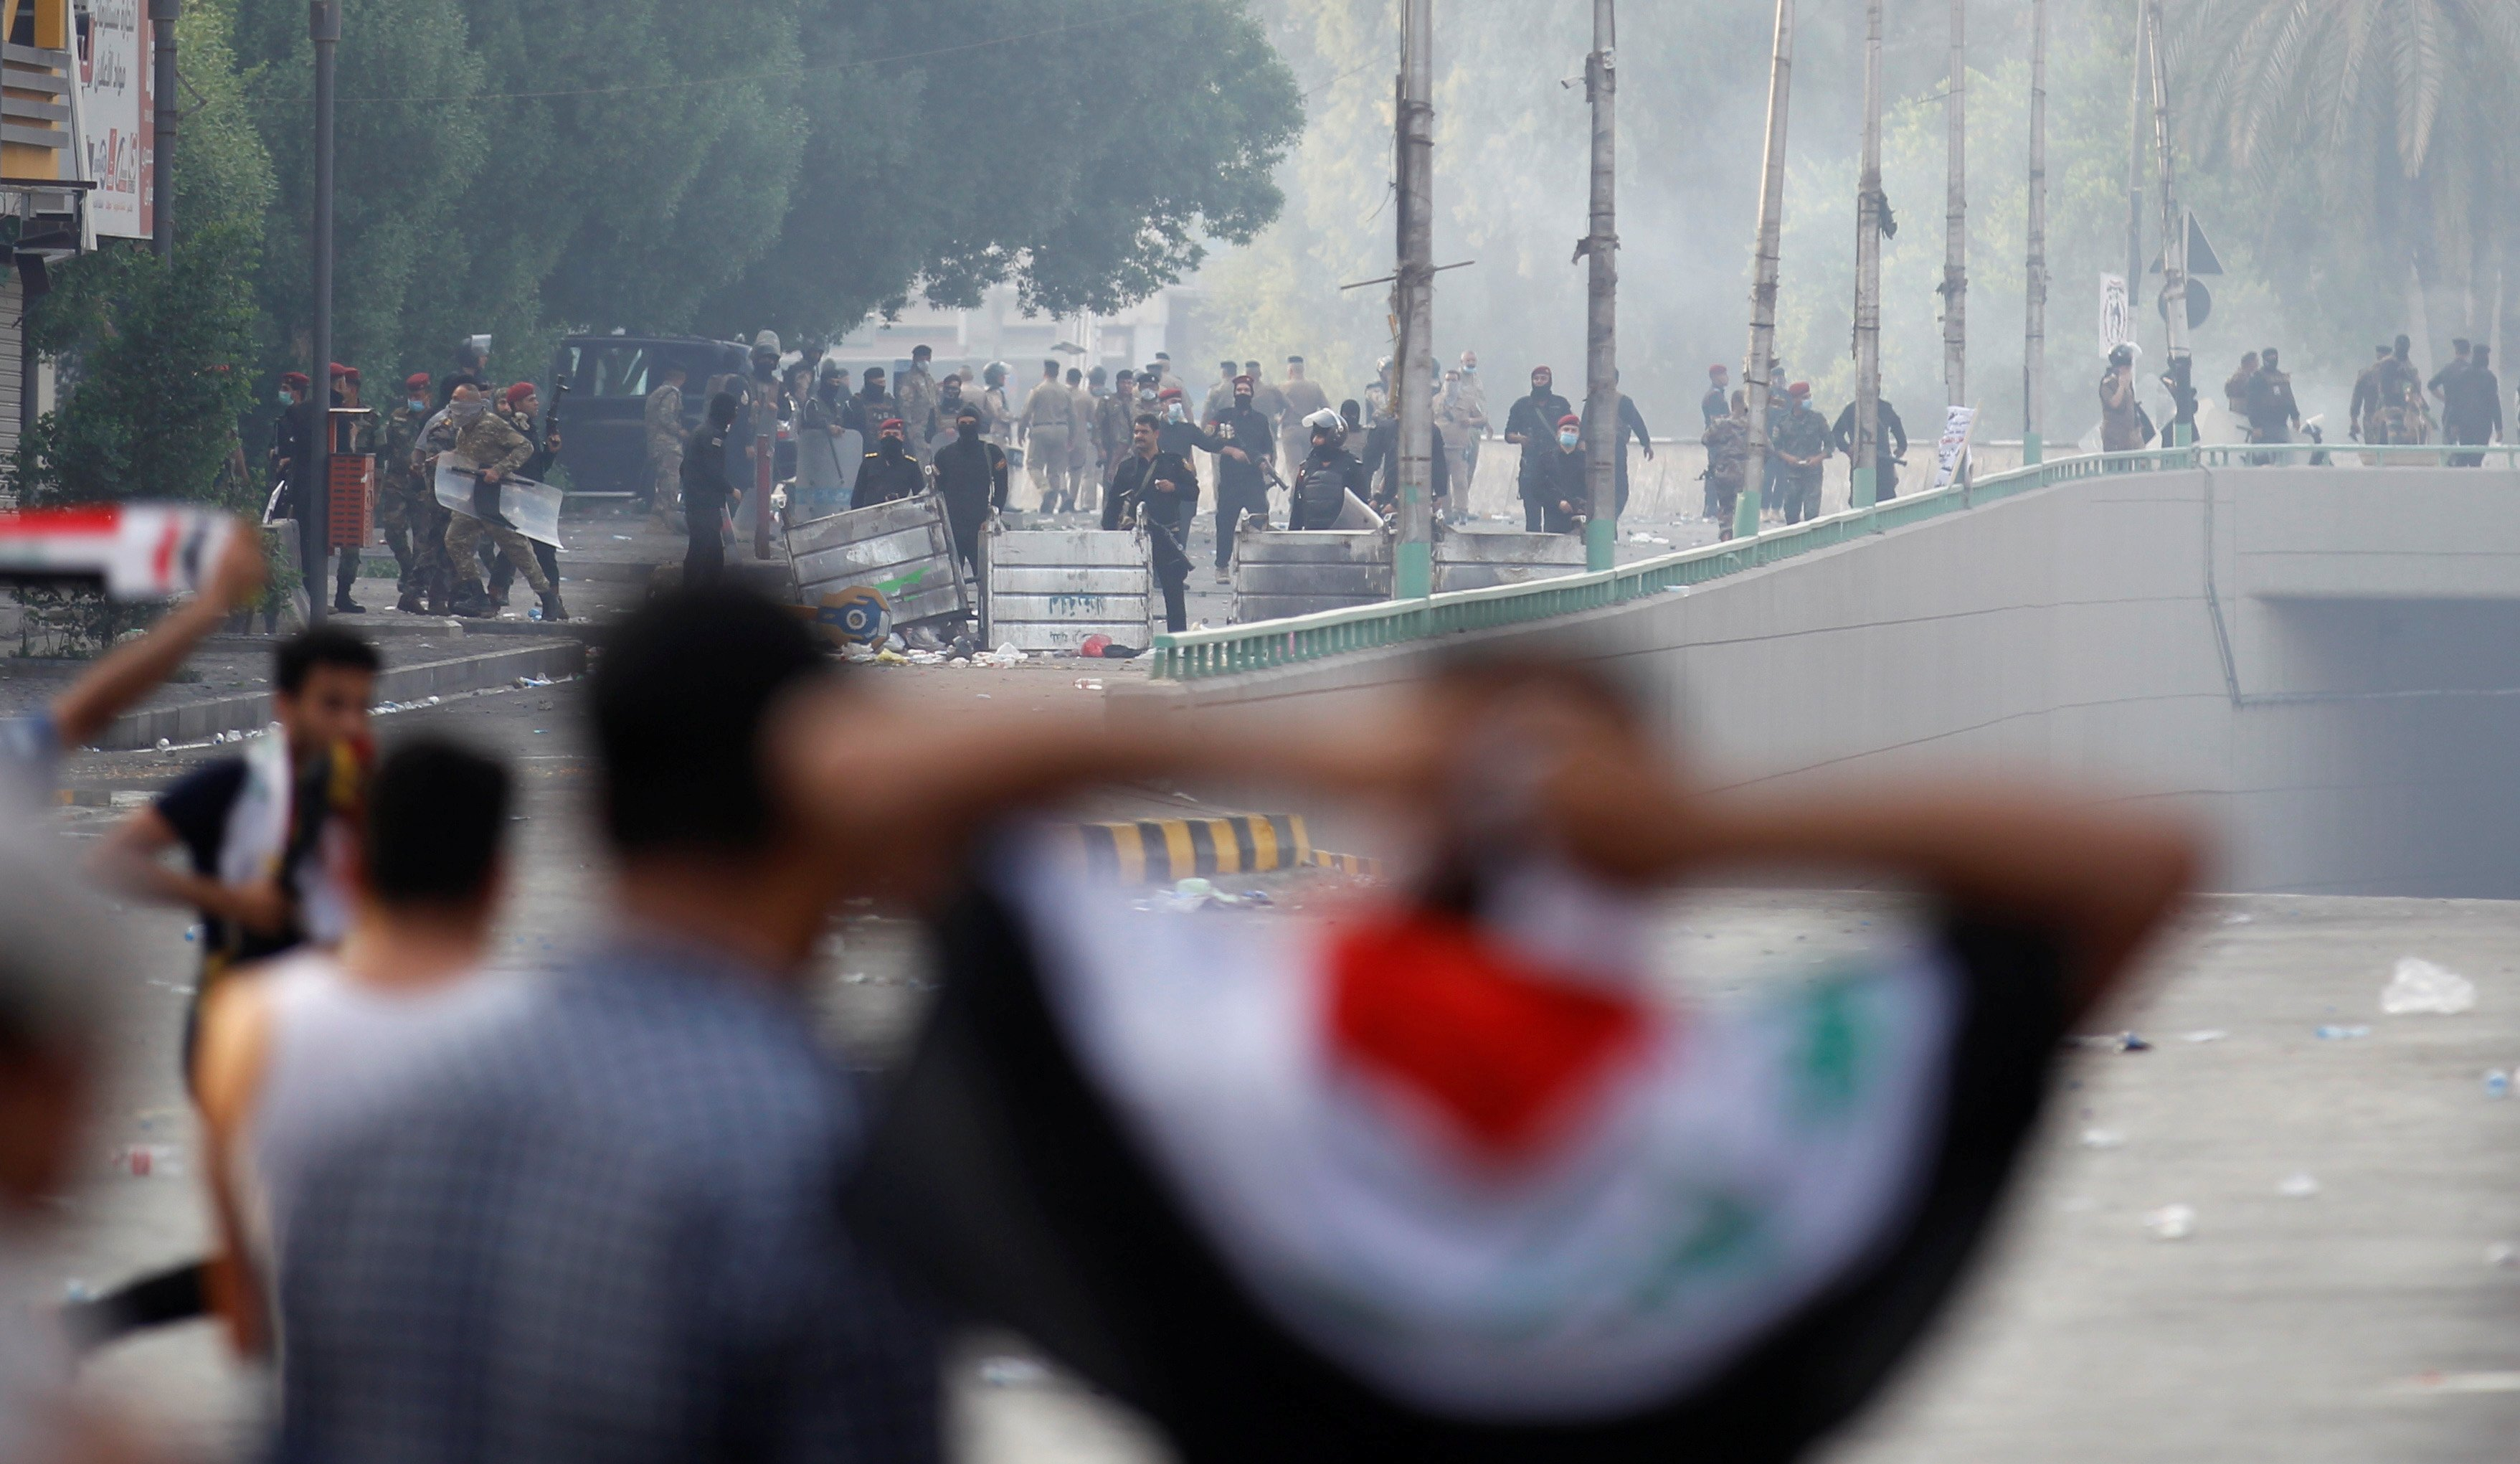 Demonstrators disperse as Iraqi Security forces use tear gas during a protest against government corruption amid dissatisfaction at lack of jobs and services at Tahrir square in Baghdad, Iraq October 1, 2019